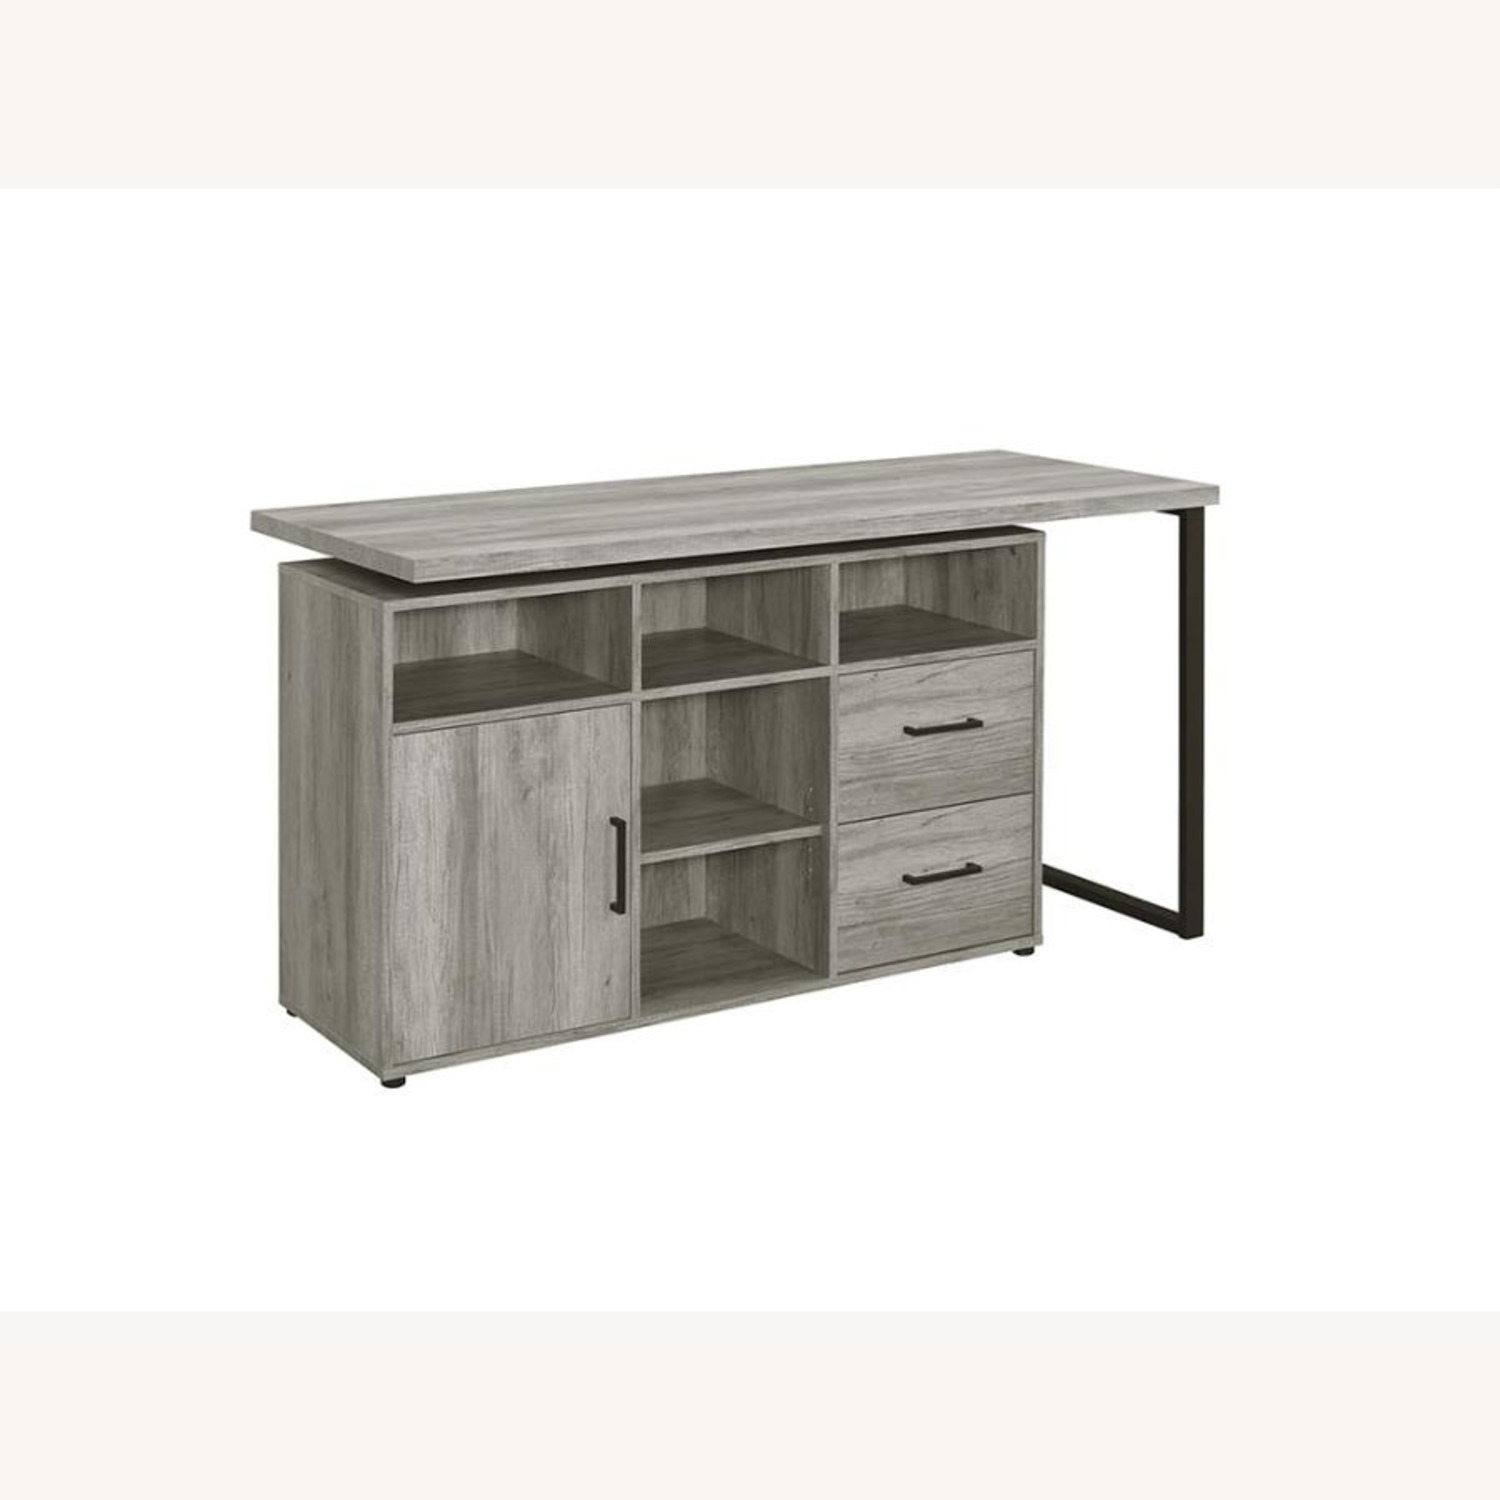 L-Shaped Office Desk In Grey Driftwood Finish - image-2